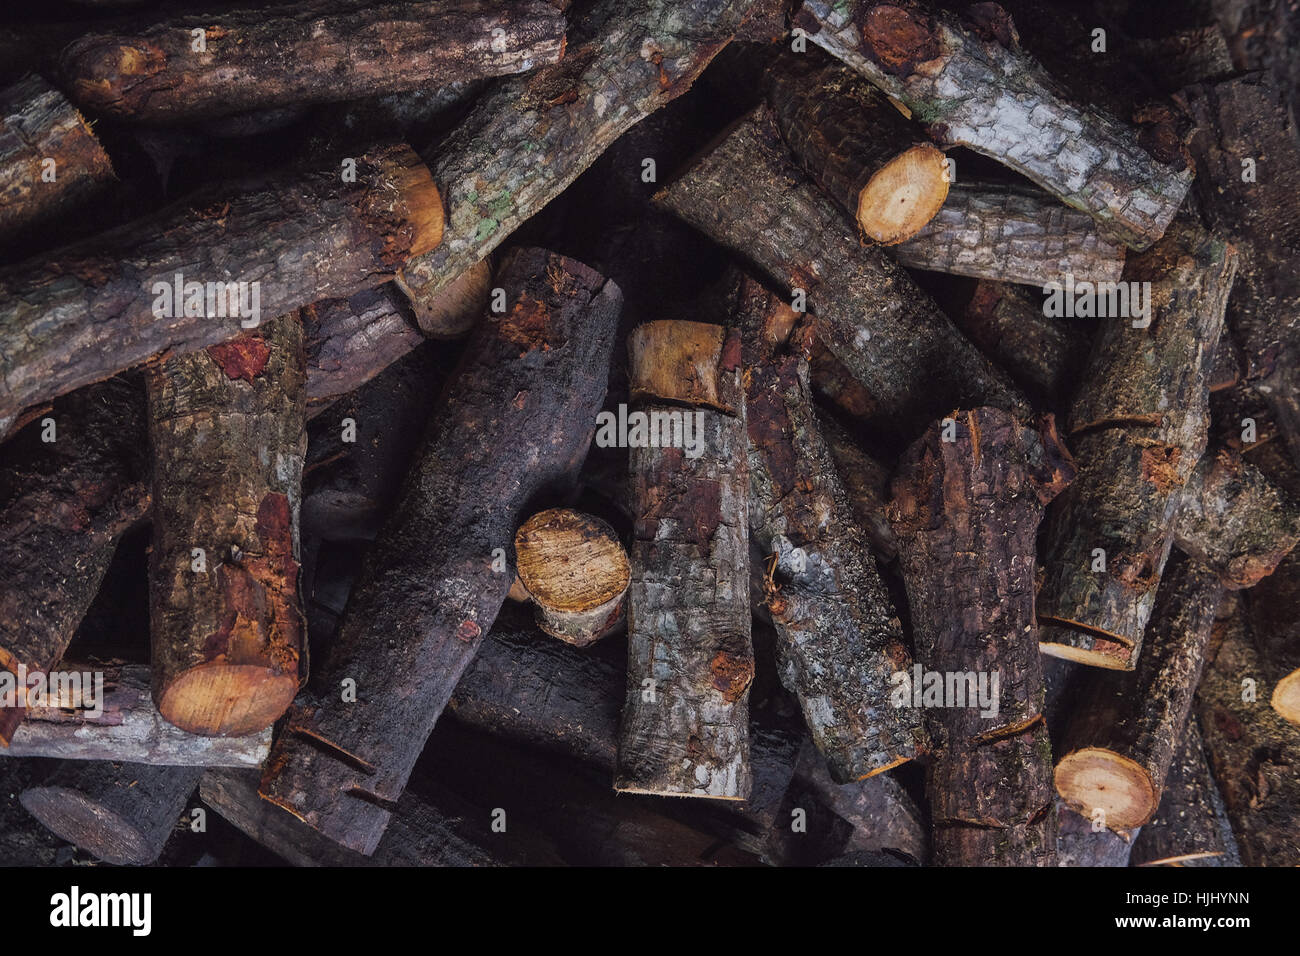 A pile of Mangrove wood for making Charcoal at Factory Stock Photo